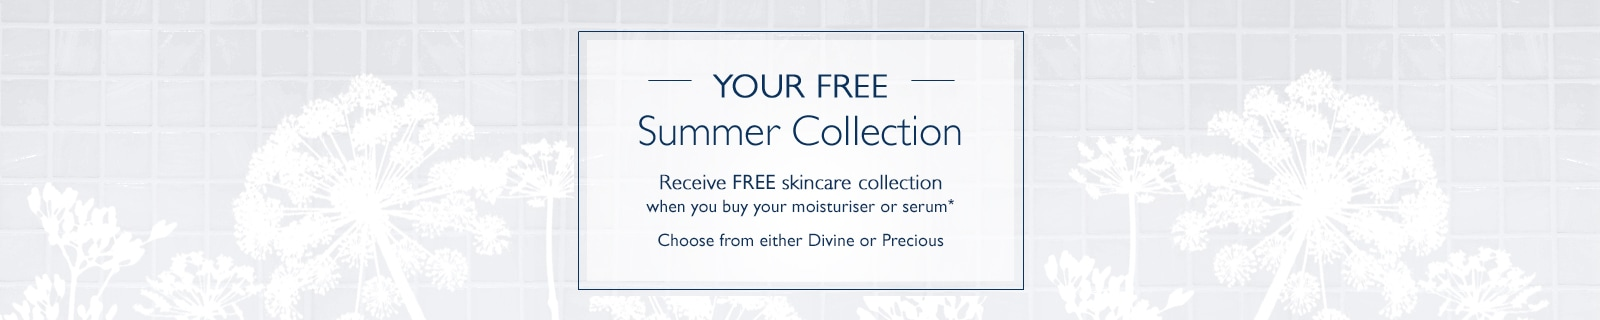 Skincare Summer Collections